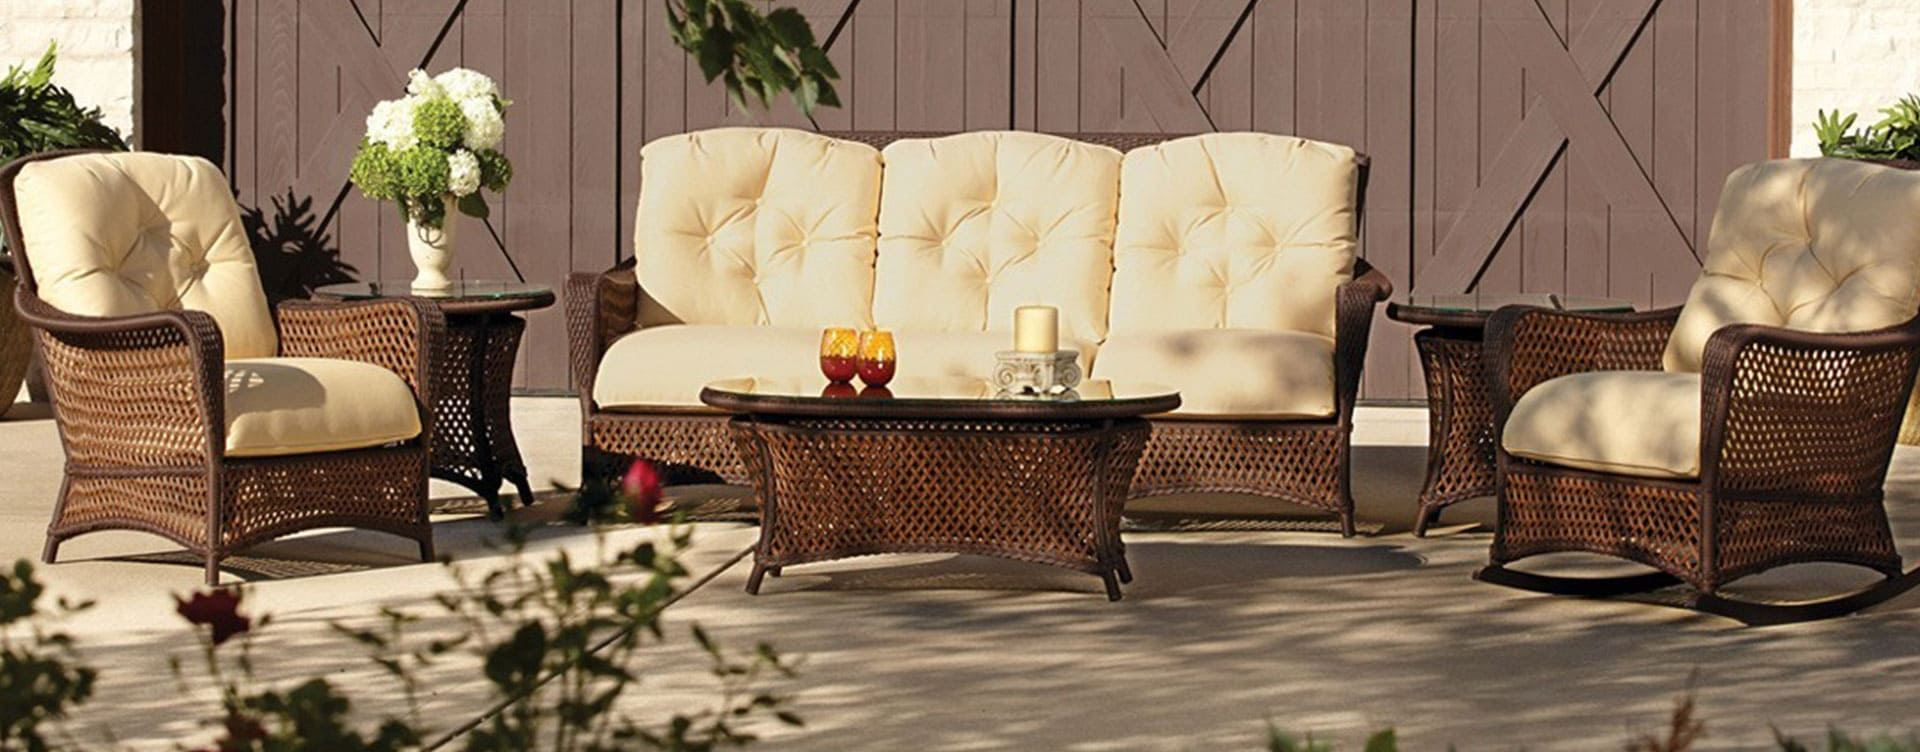 outdoor furniture in delhi